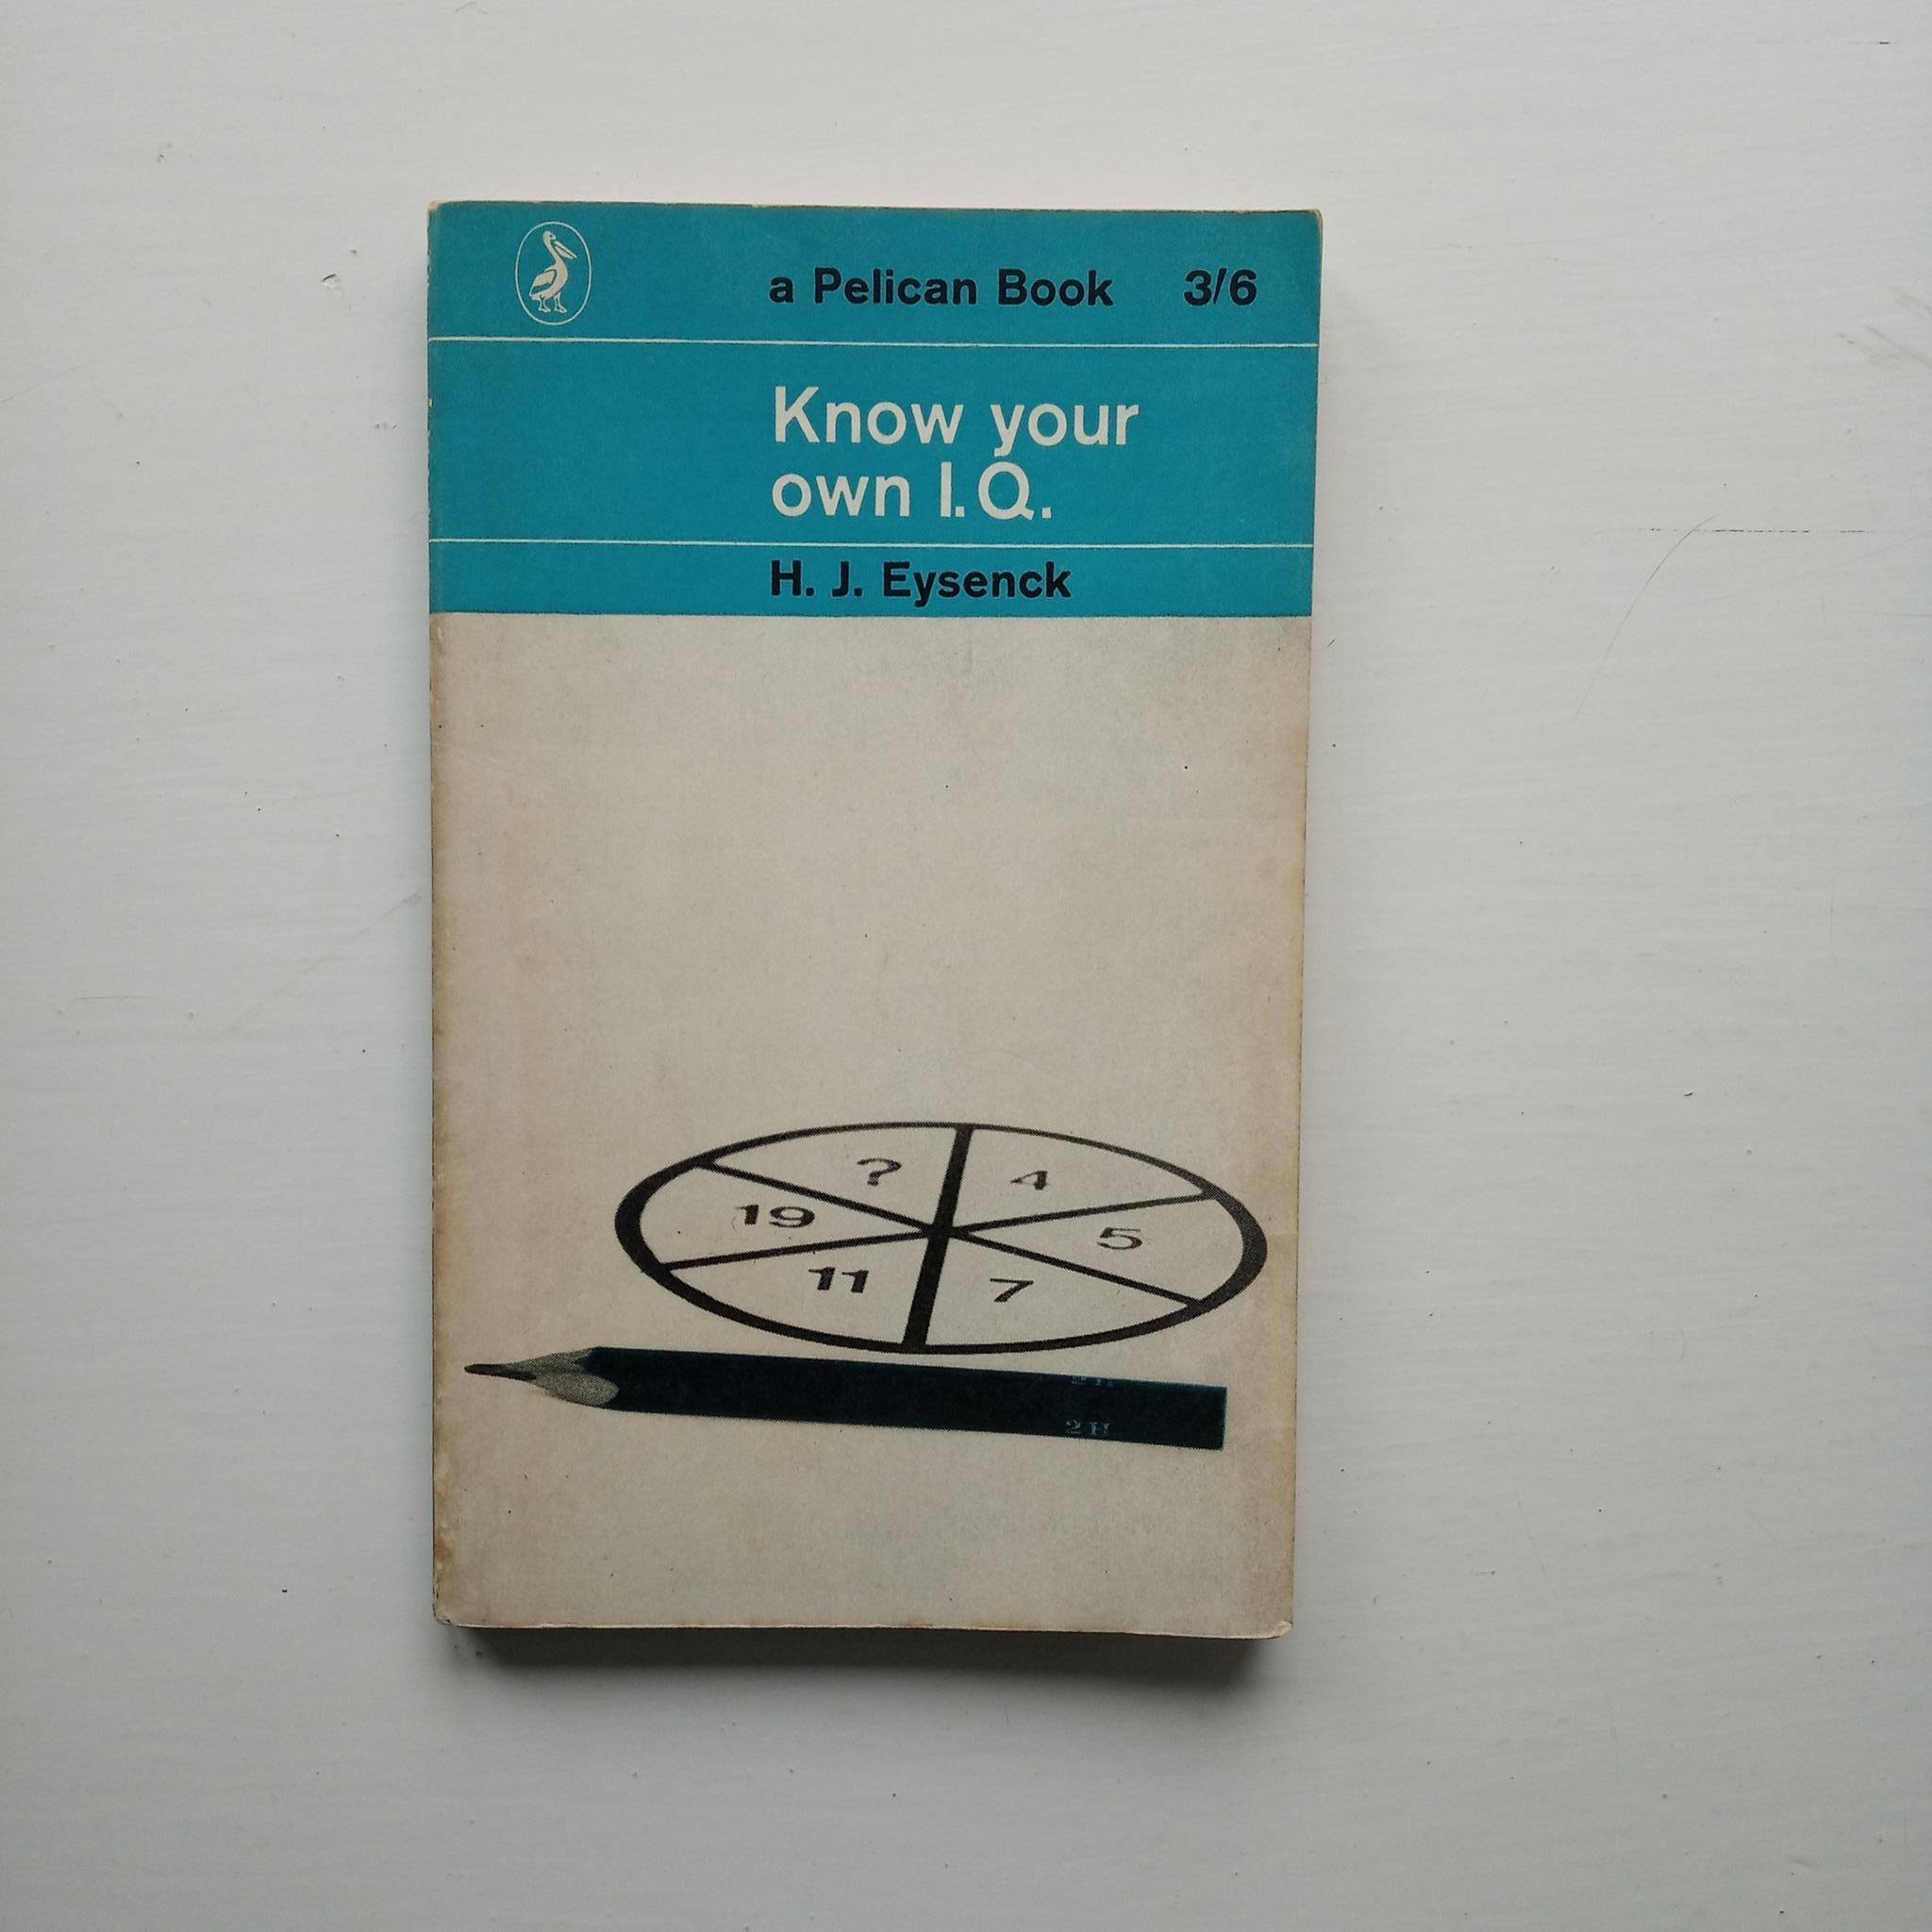 Know Your Own I.Q. by H. J. Eysenck